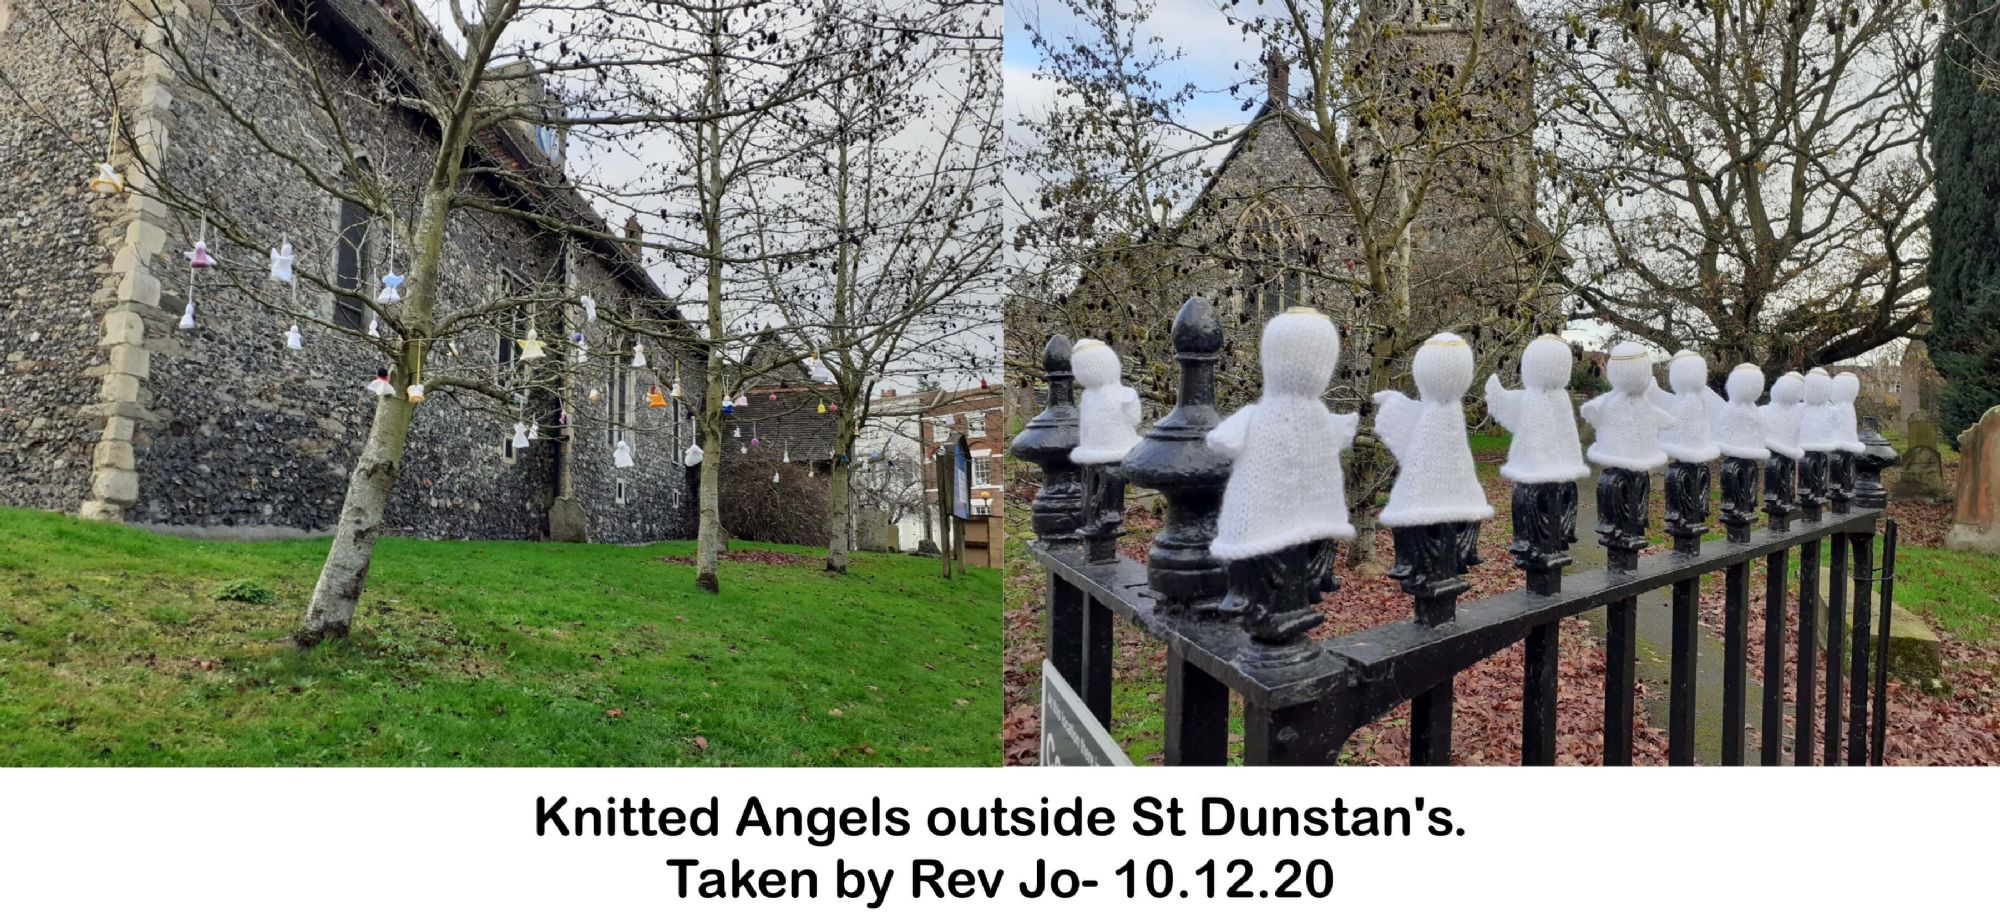 Knitted Angels outside St Dunstan's.